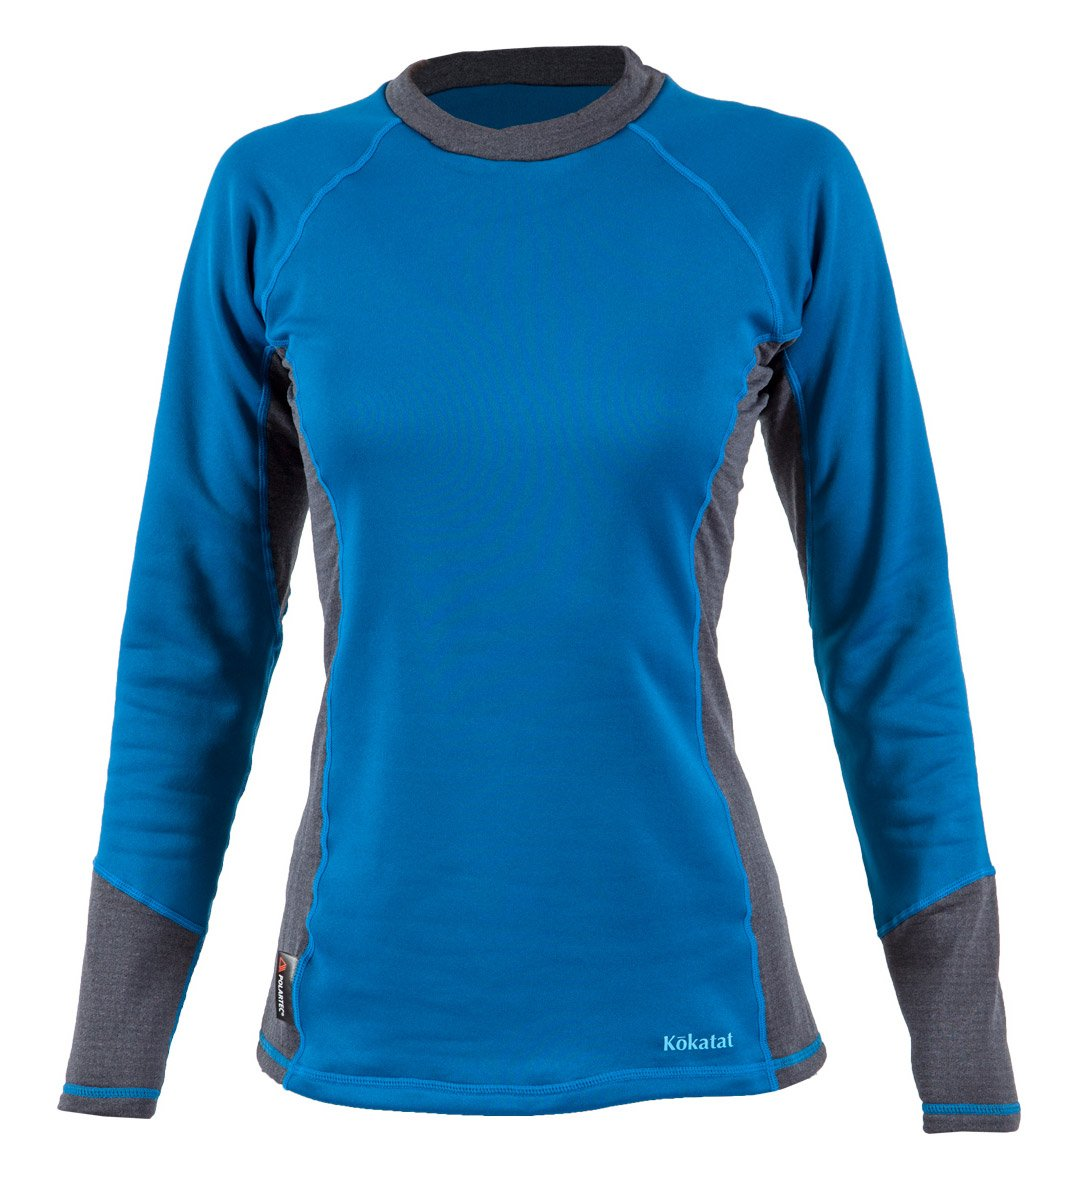 Kokatat Women's Polartec Power Dry Outercore Long Sleeve Shirt-Ocean-S